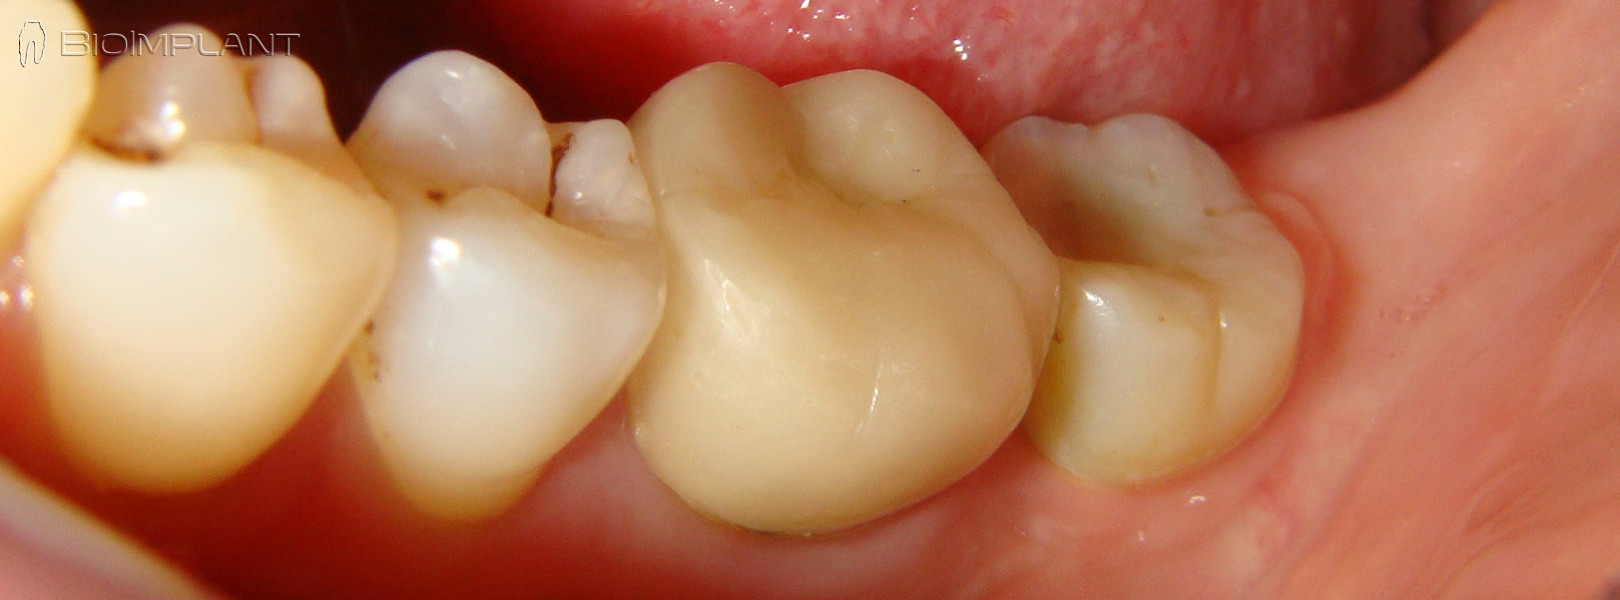 immediate-ceramic-dental-implant-rai